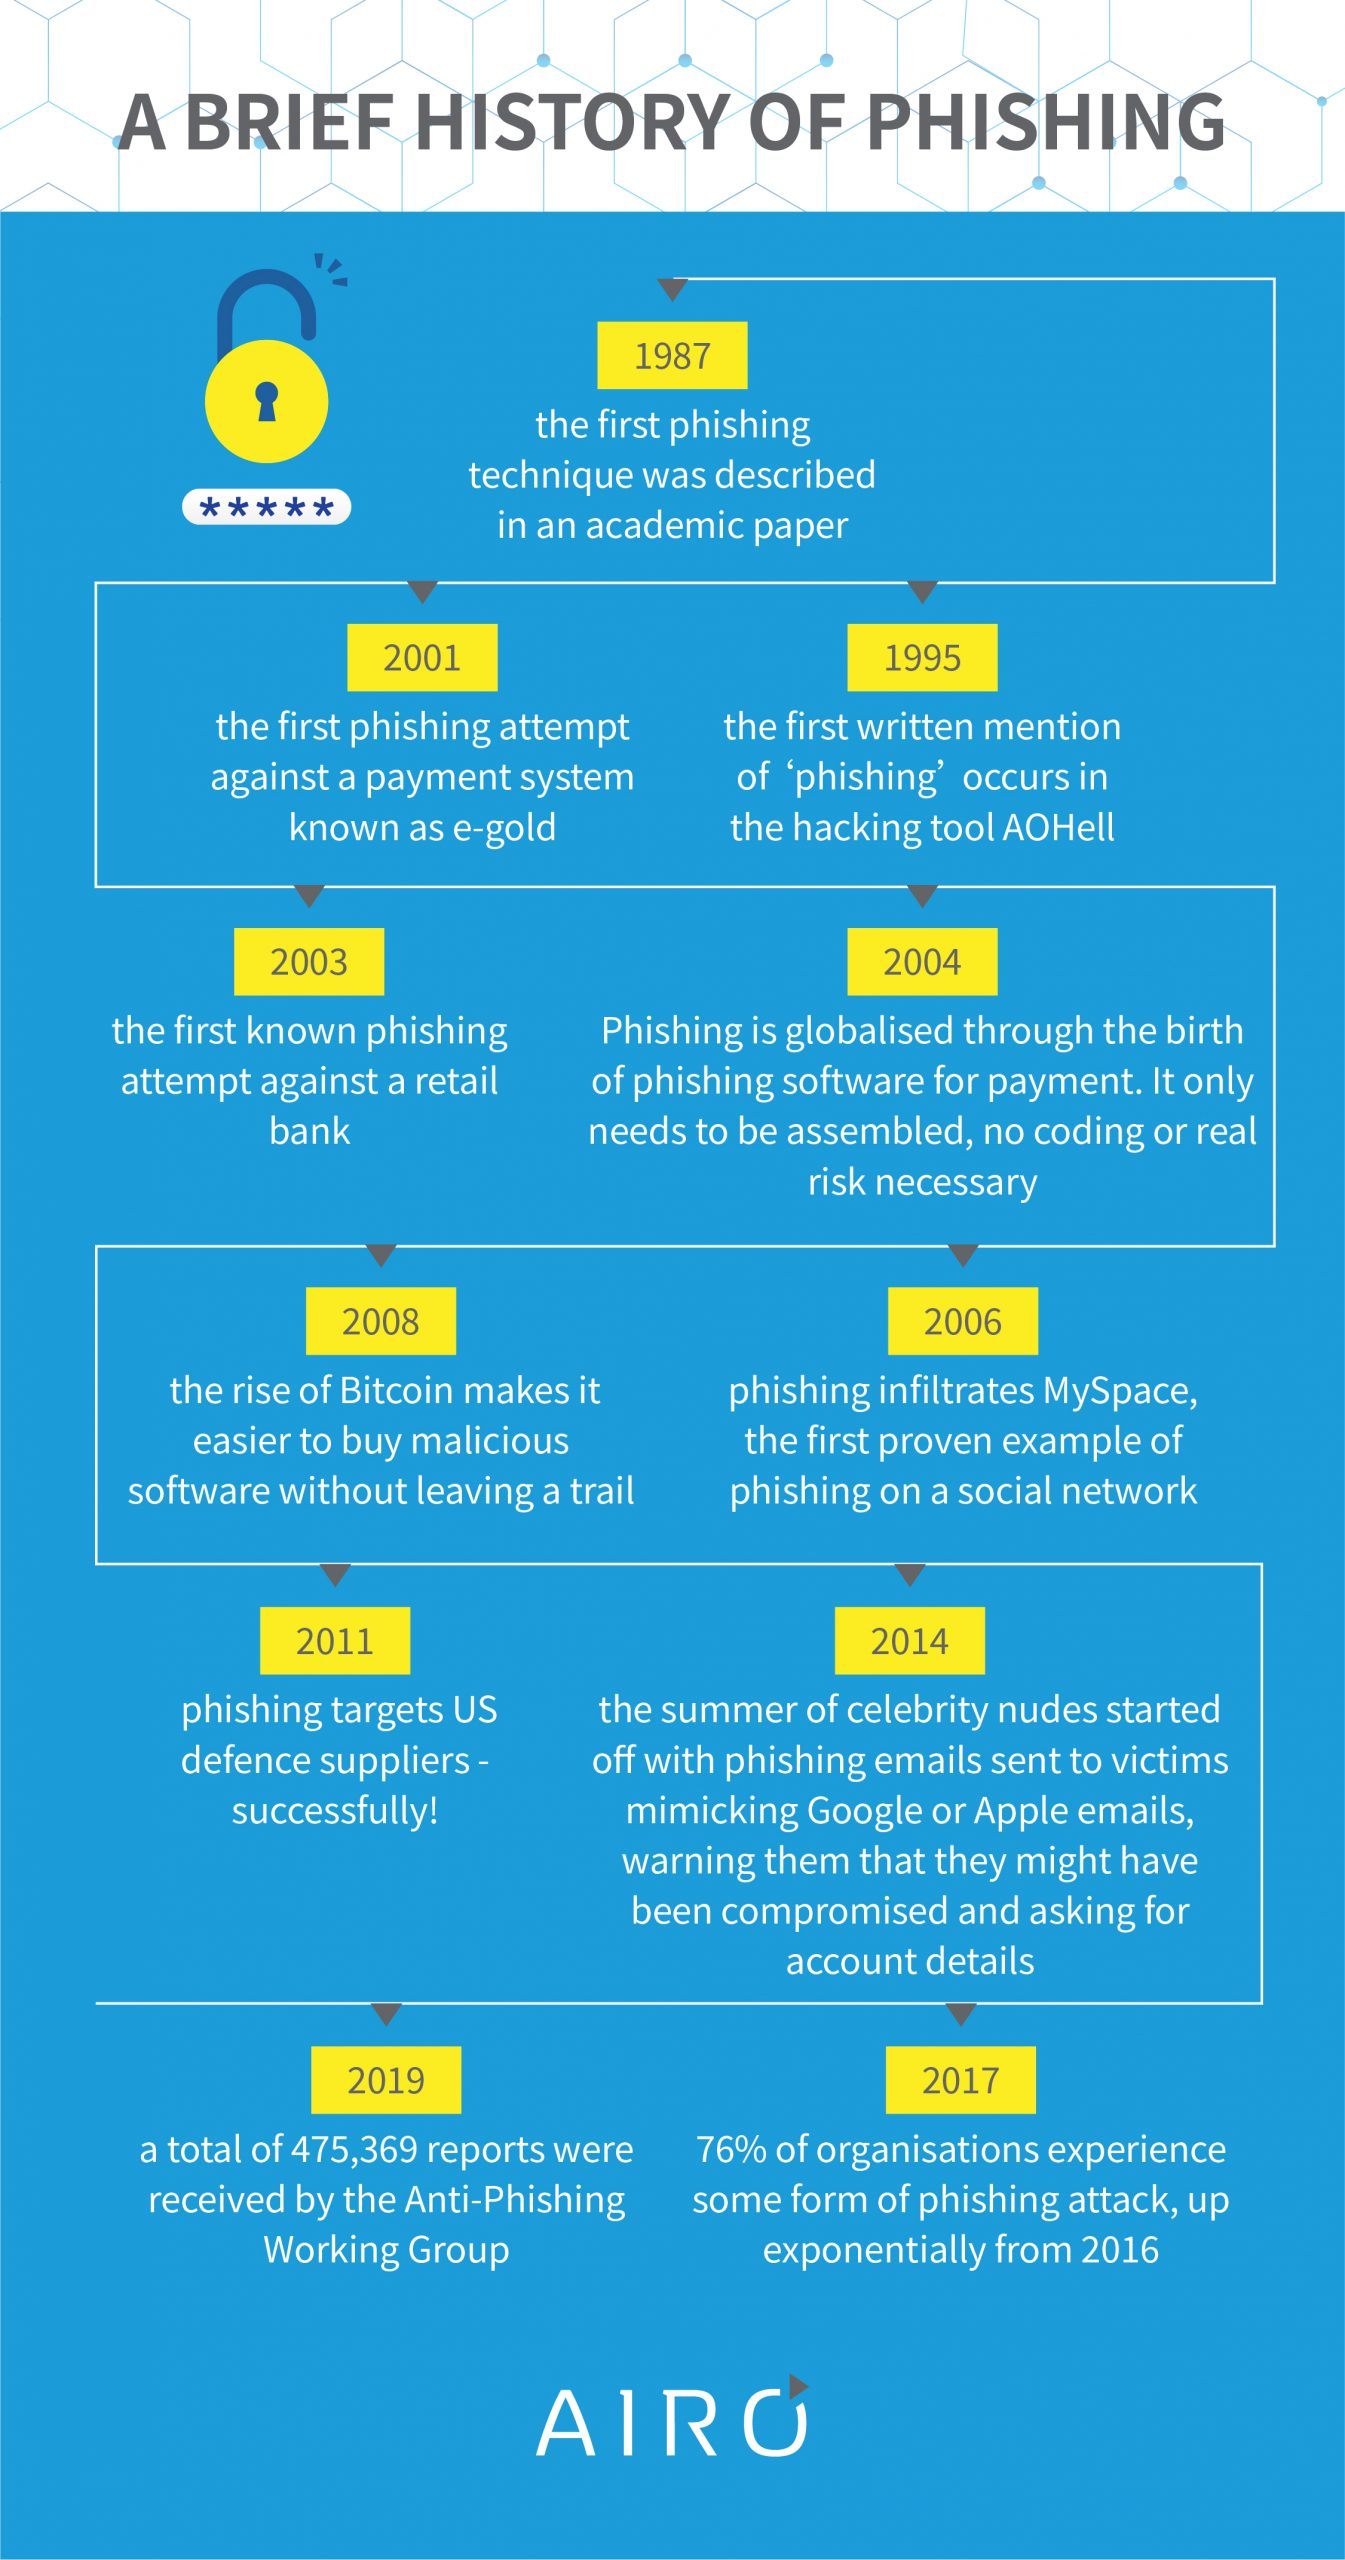 A timeline history of phishing attacks.